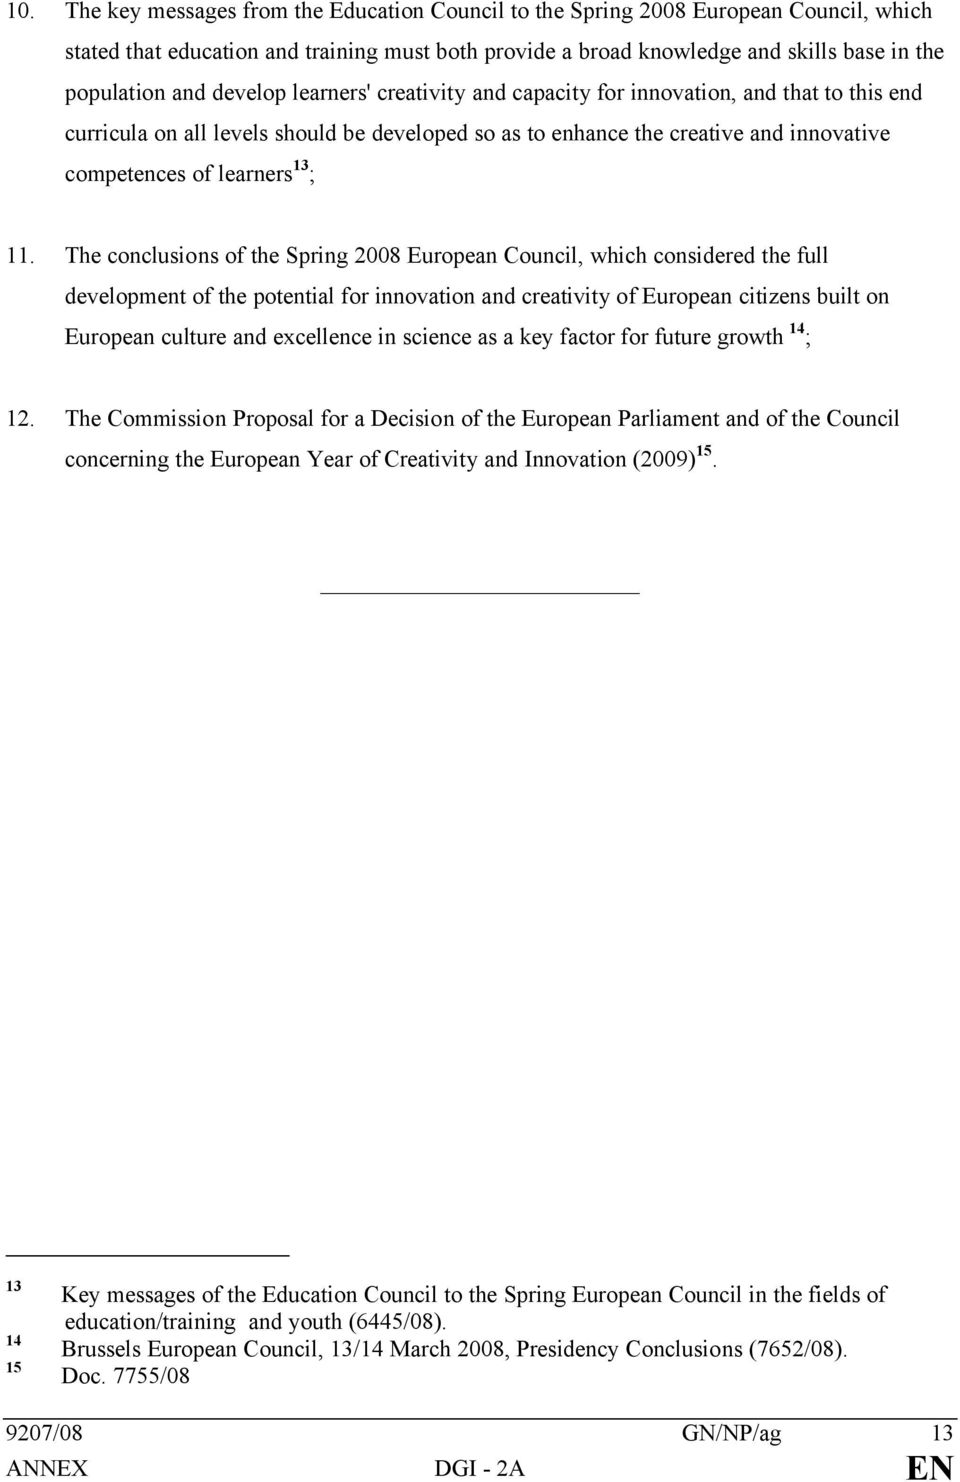 The conclusions of the Spring 2008 European Council, which considered the full development of the potential for innovation and creativity of European citizens built on European culture and excellence